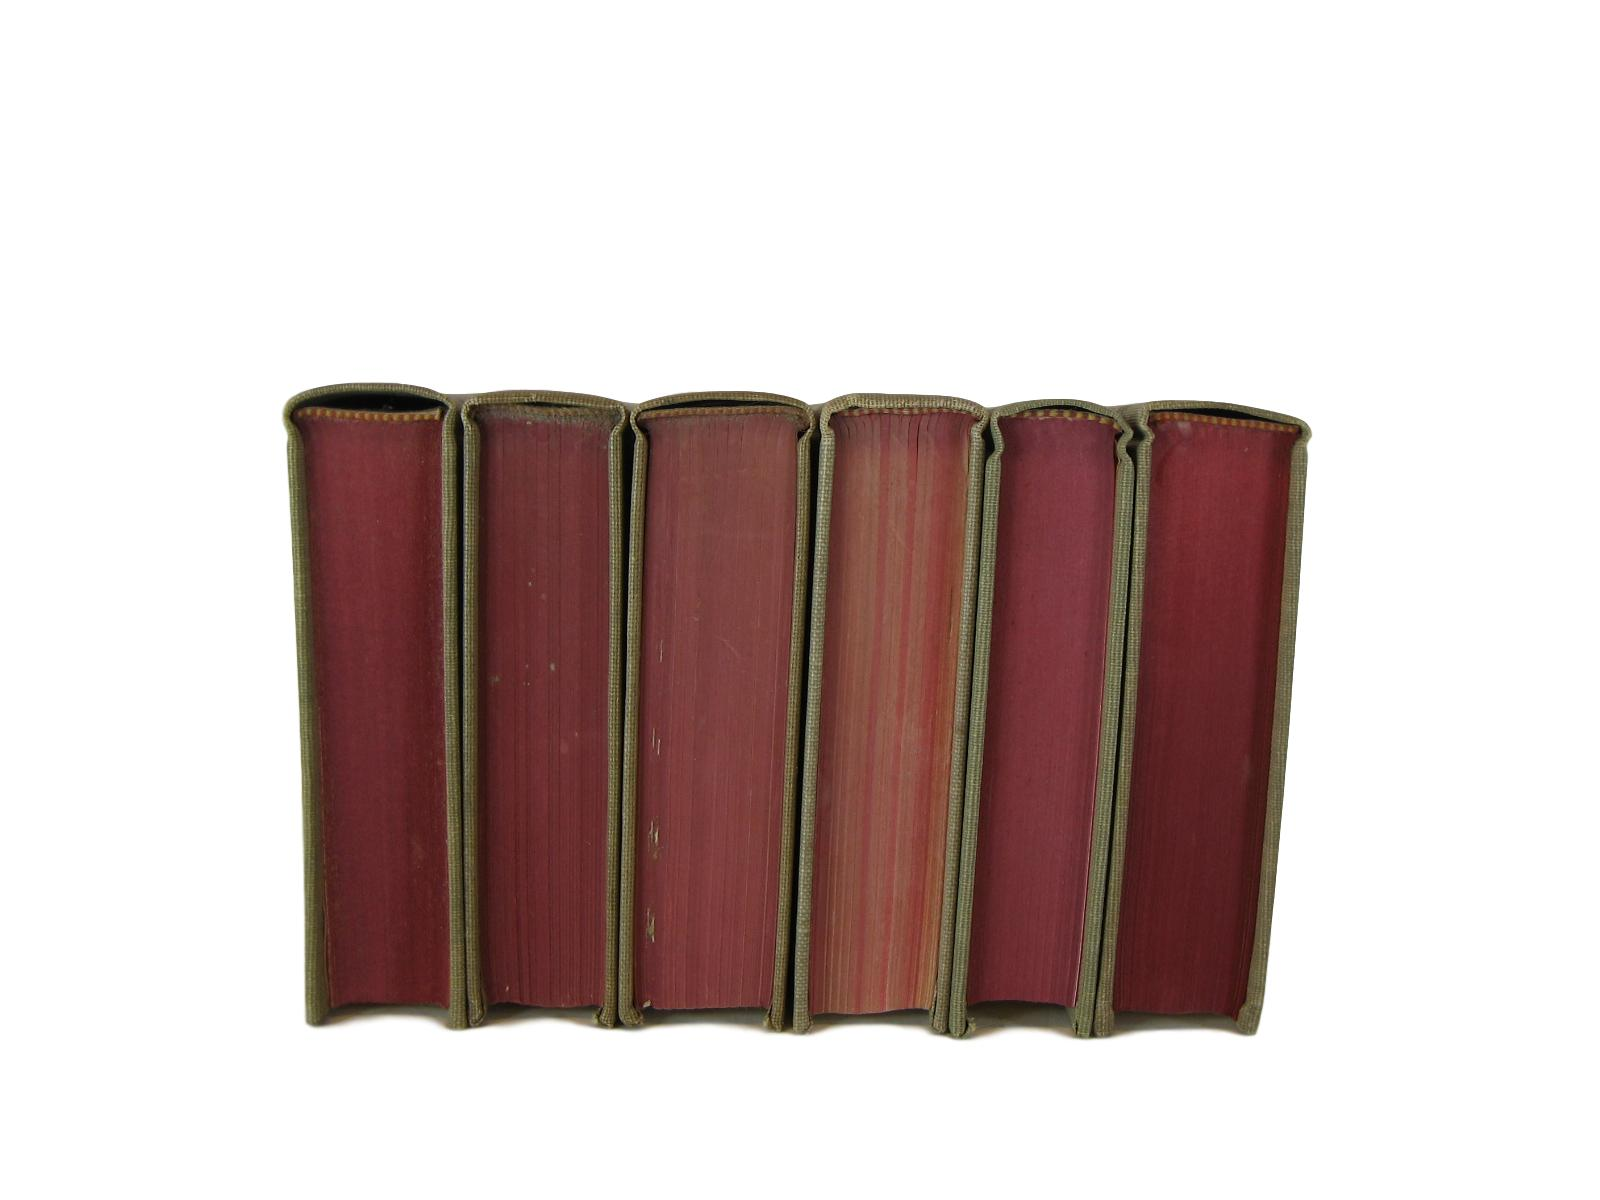 Vintage Books for Bookshelf Decor  in Red and Neutral Tones, S/6, [decorative_books], Decades of Vintage